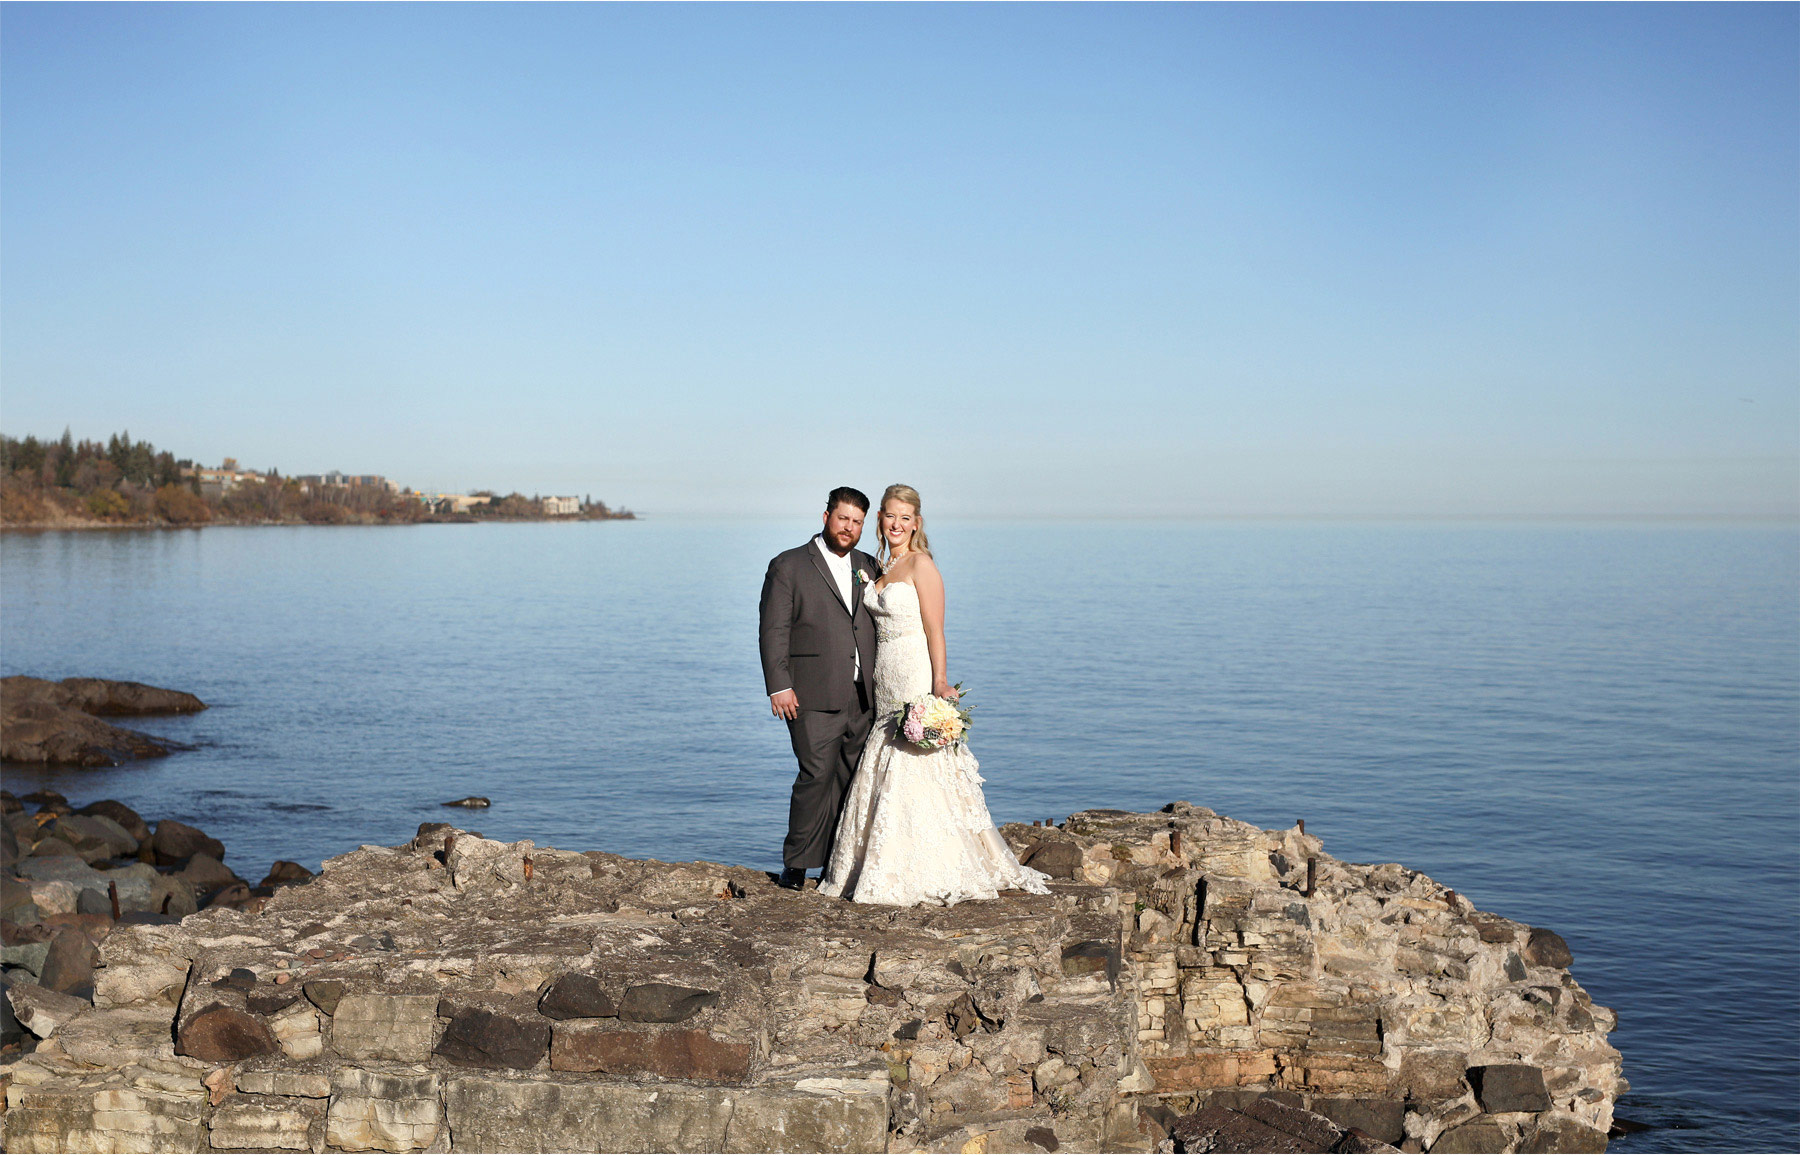 08-Duluth-Minnesota-Wedding-Photographer-by-Andrew-Vick-Photography-Fall-Autumn-Lake-Superior-First-Meeting-Look-Bride-Groom-Molly-and-Carson.jpg